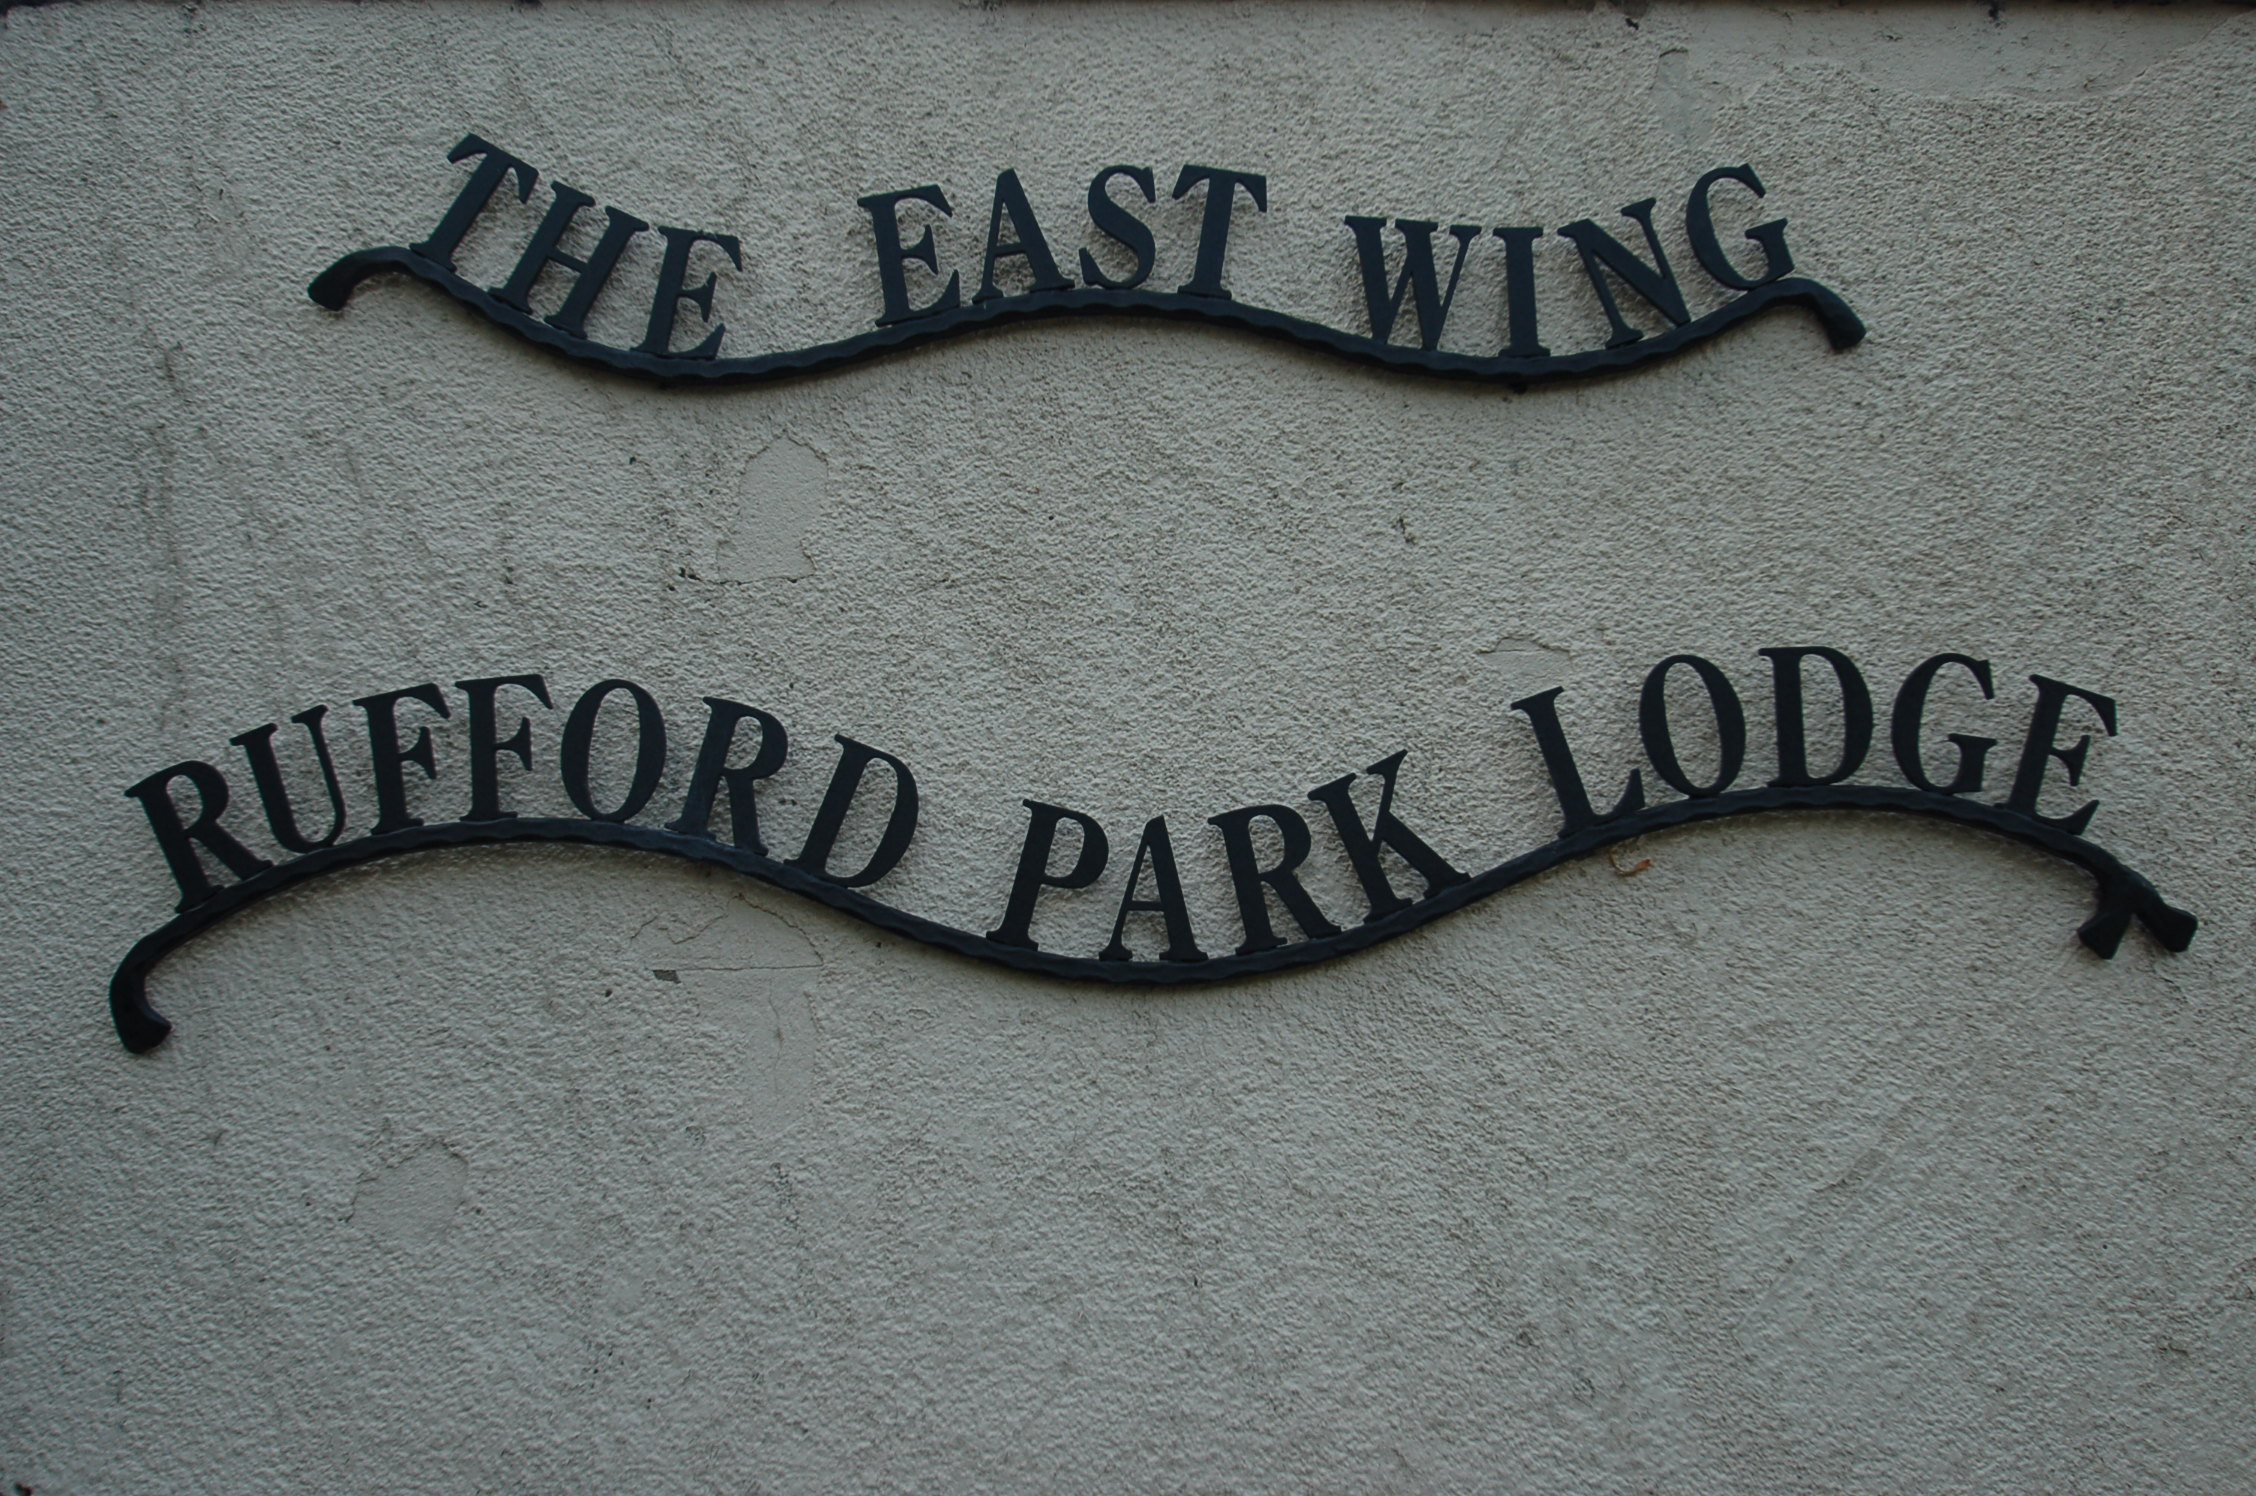 The East Wing Rufford Park Lodge Welcome Sign